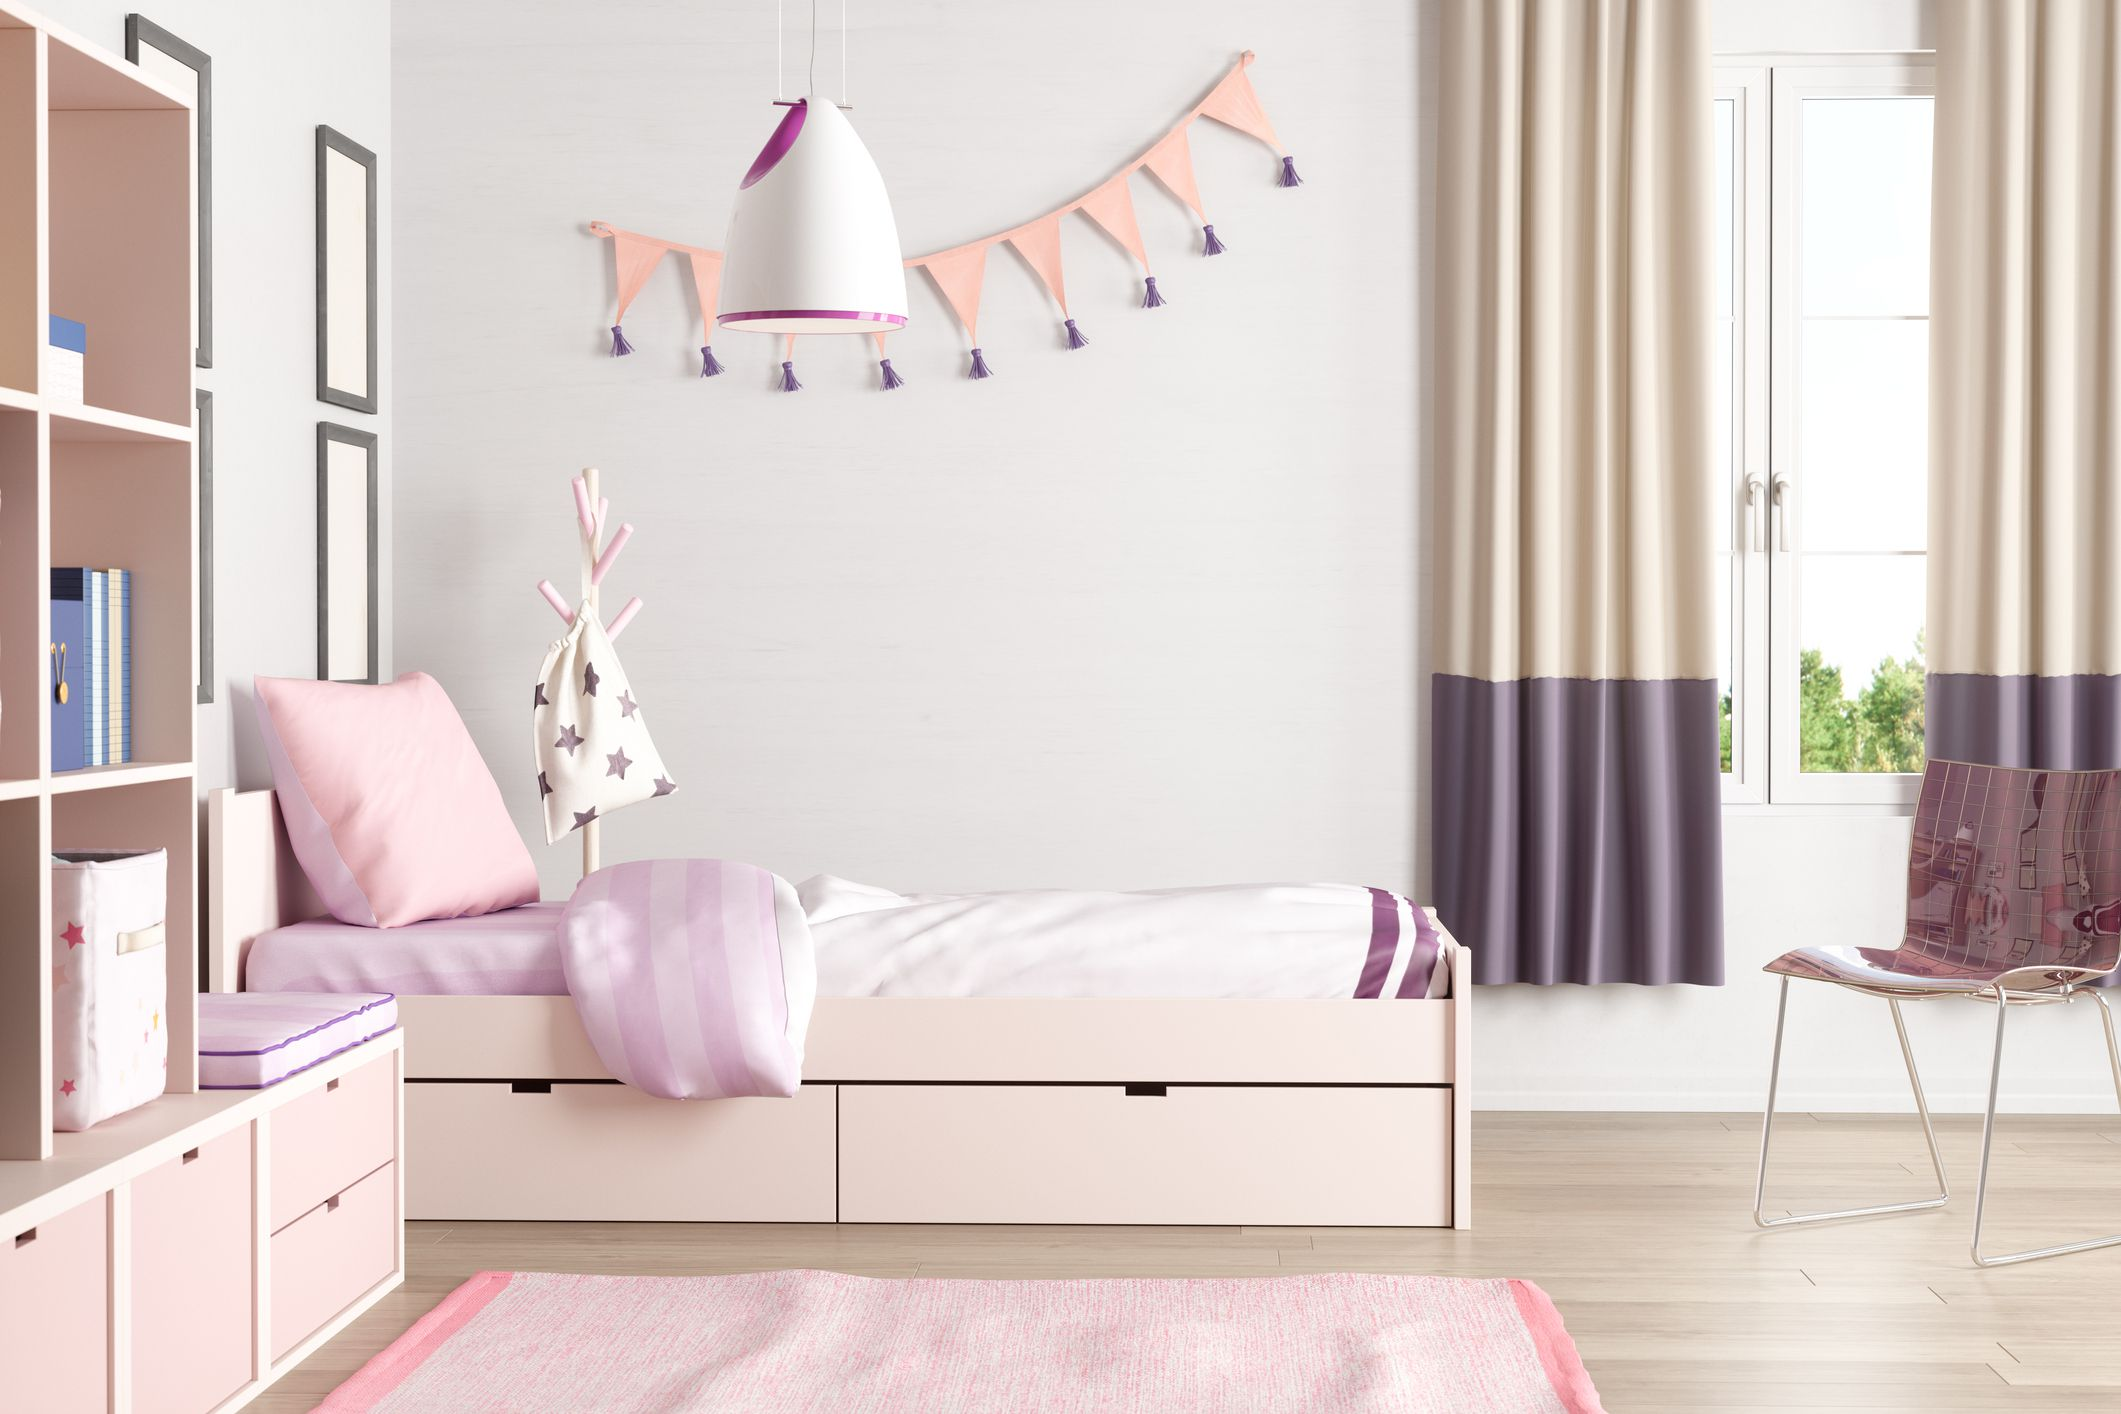 creative budget friendly decor ideas for your teenagers bedroom - Kids Room Wall Decor Ideas